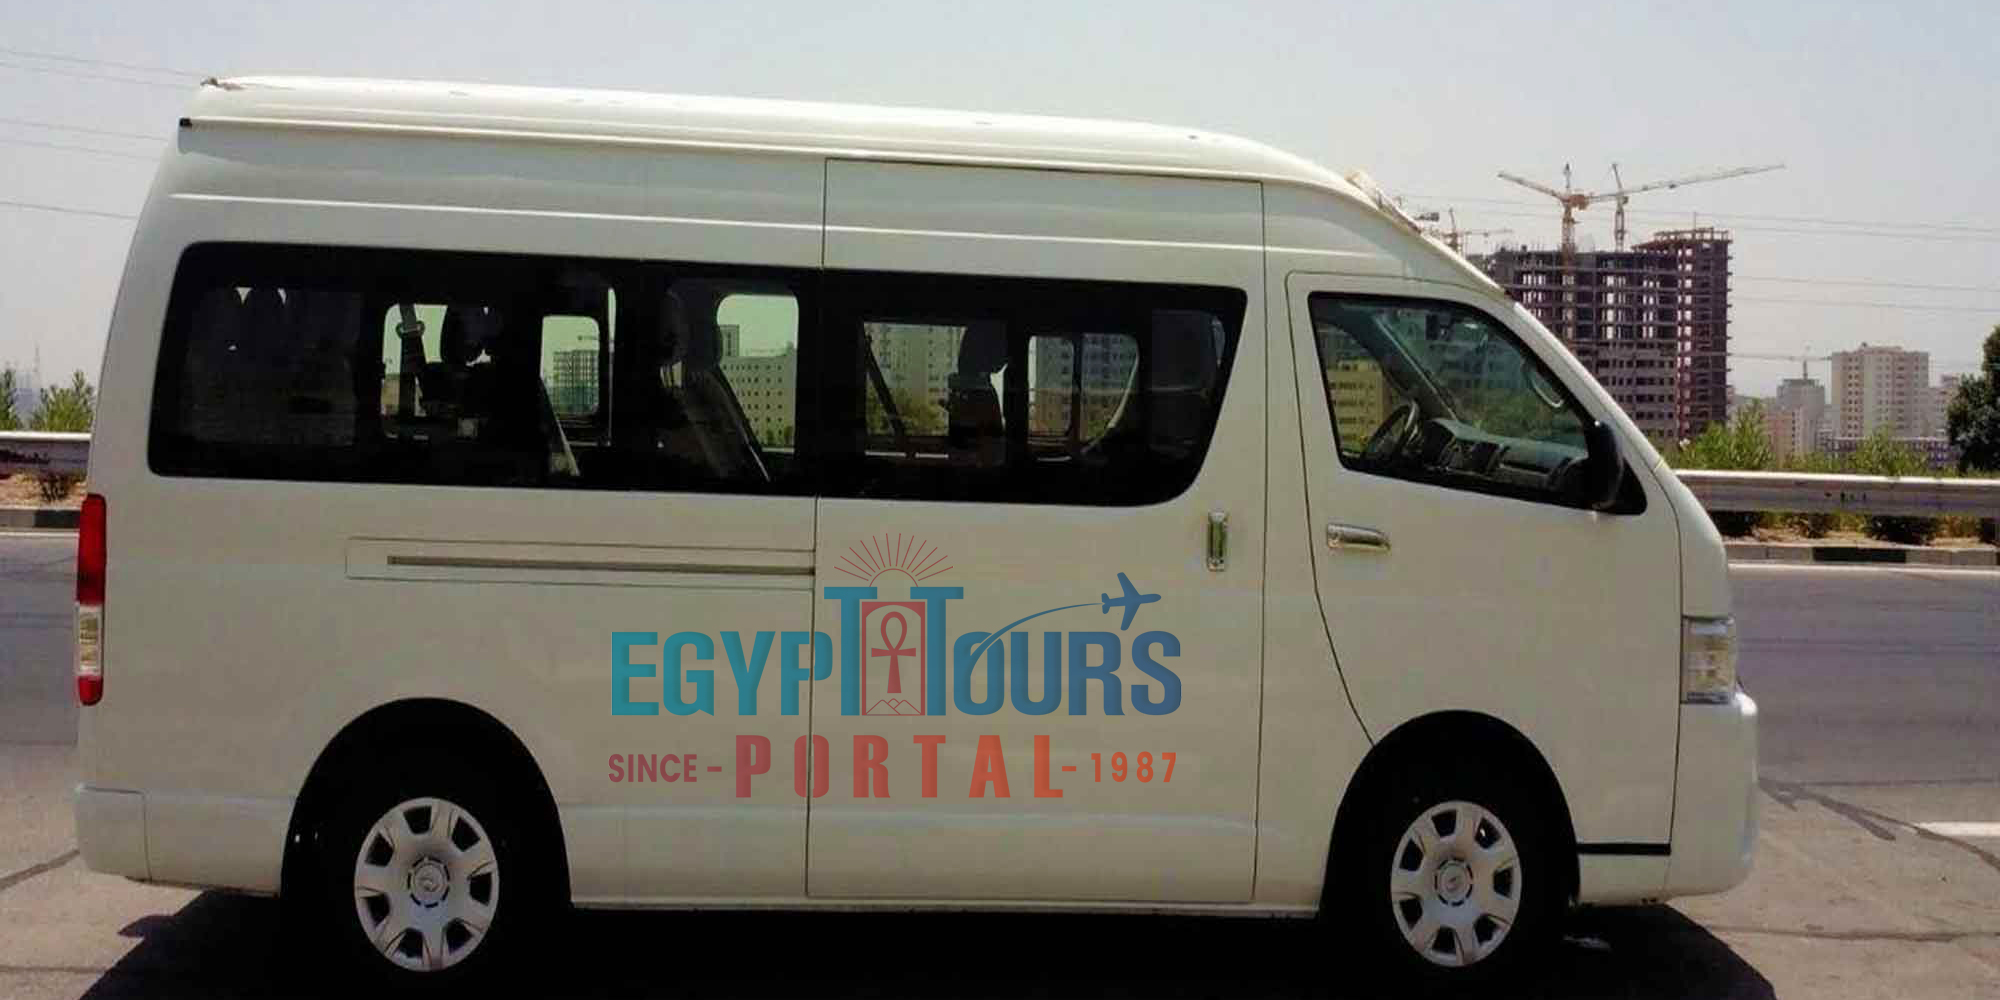 Transfer from Hurghada to Marsa Alam